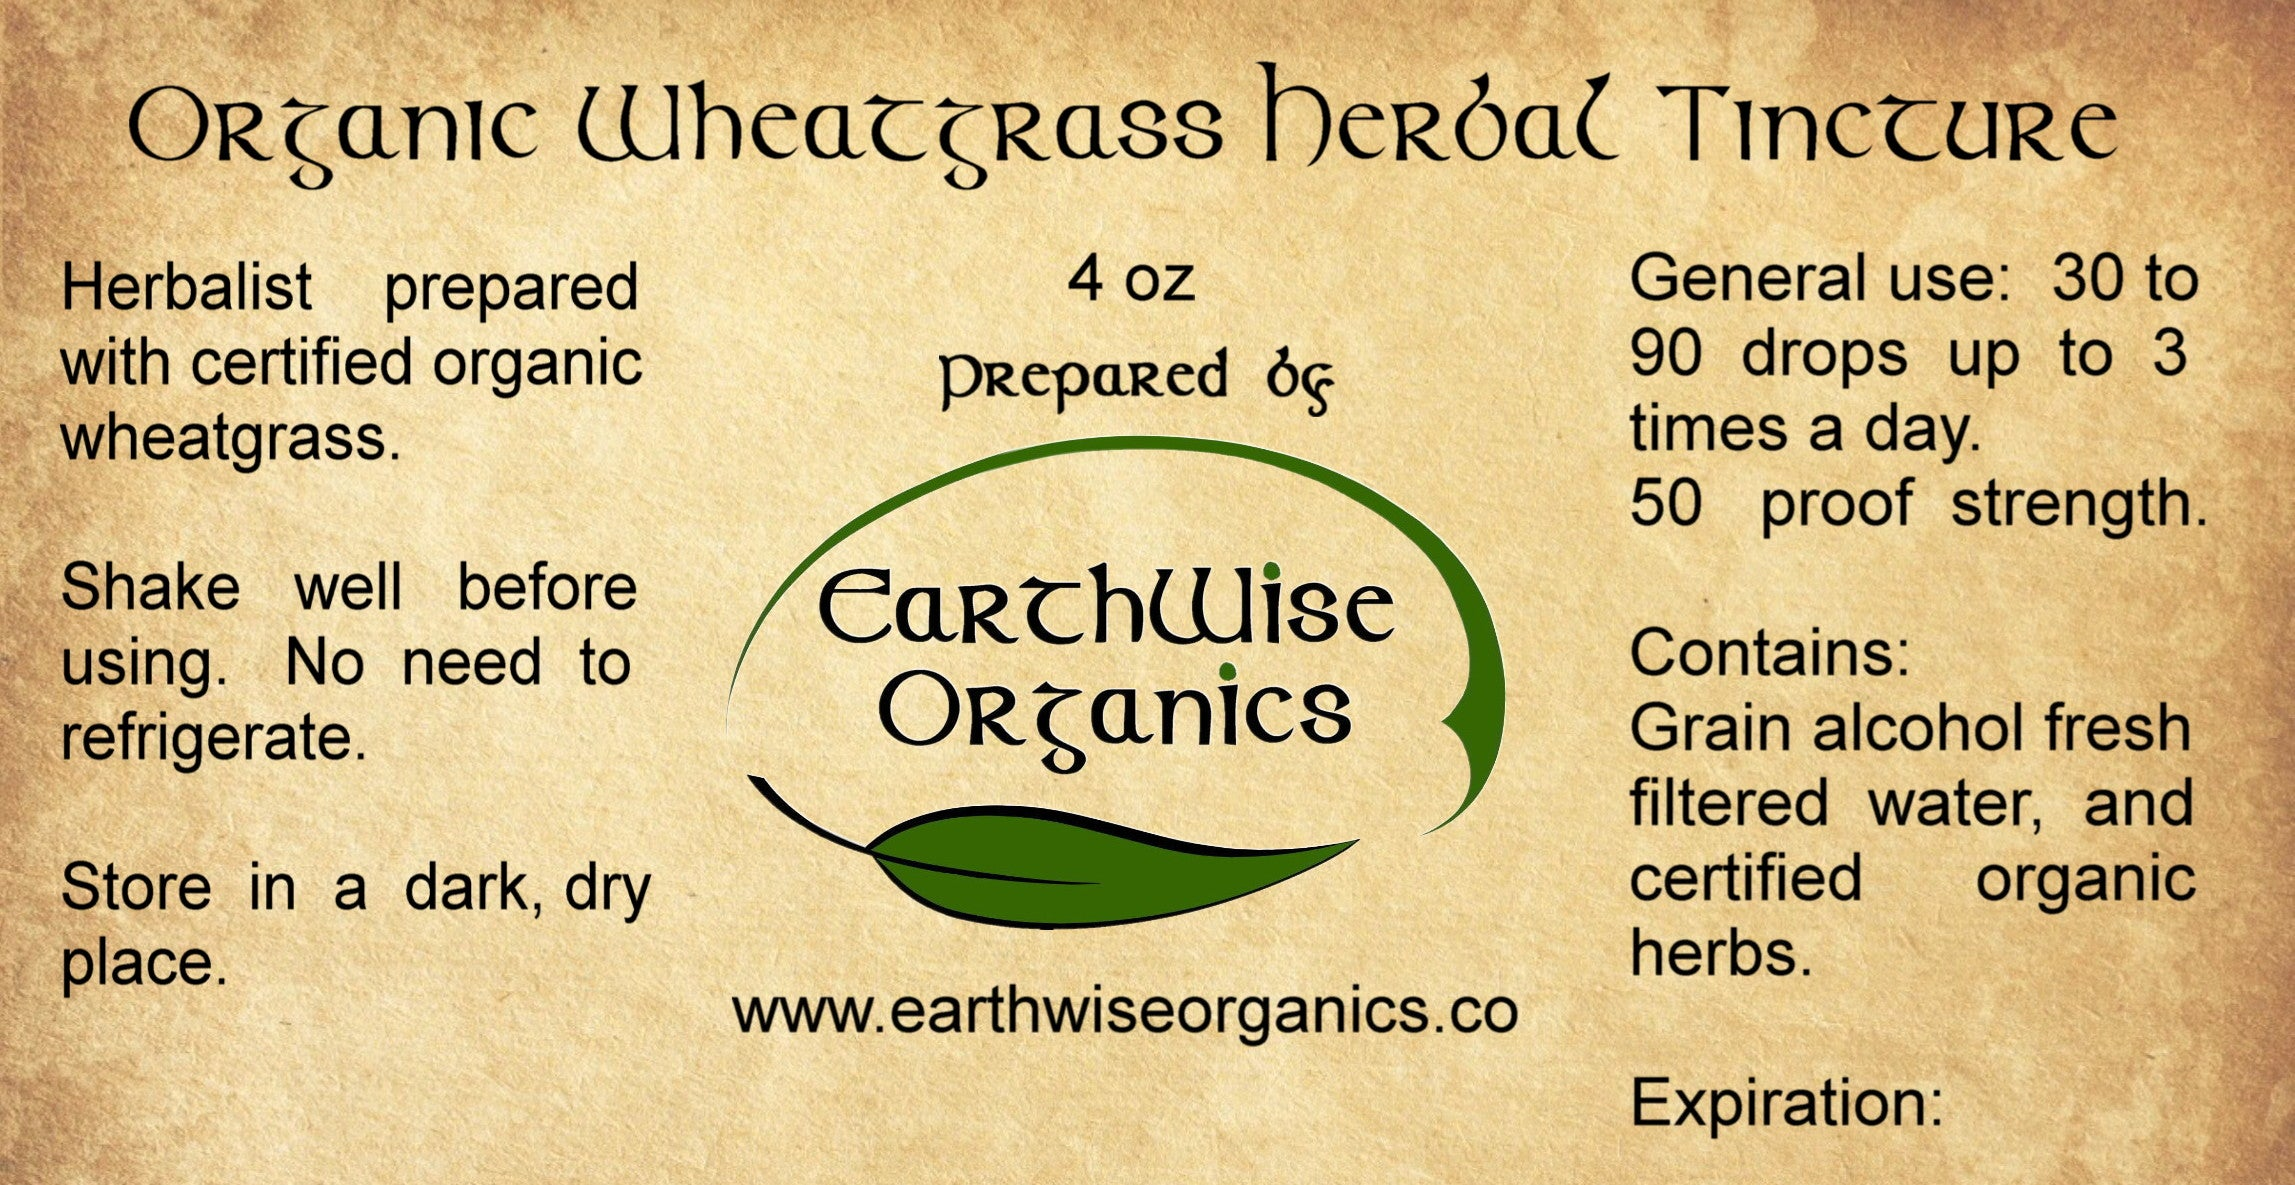 wheatgrass organic herbal tincture label